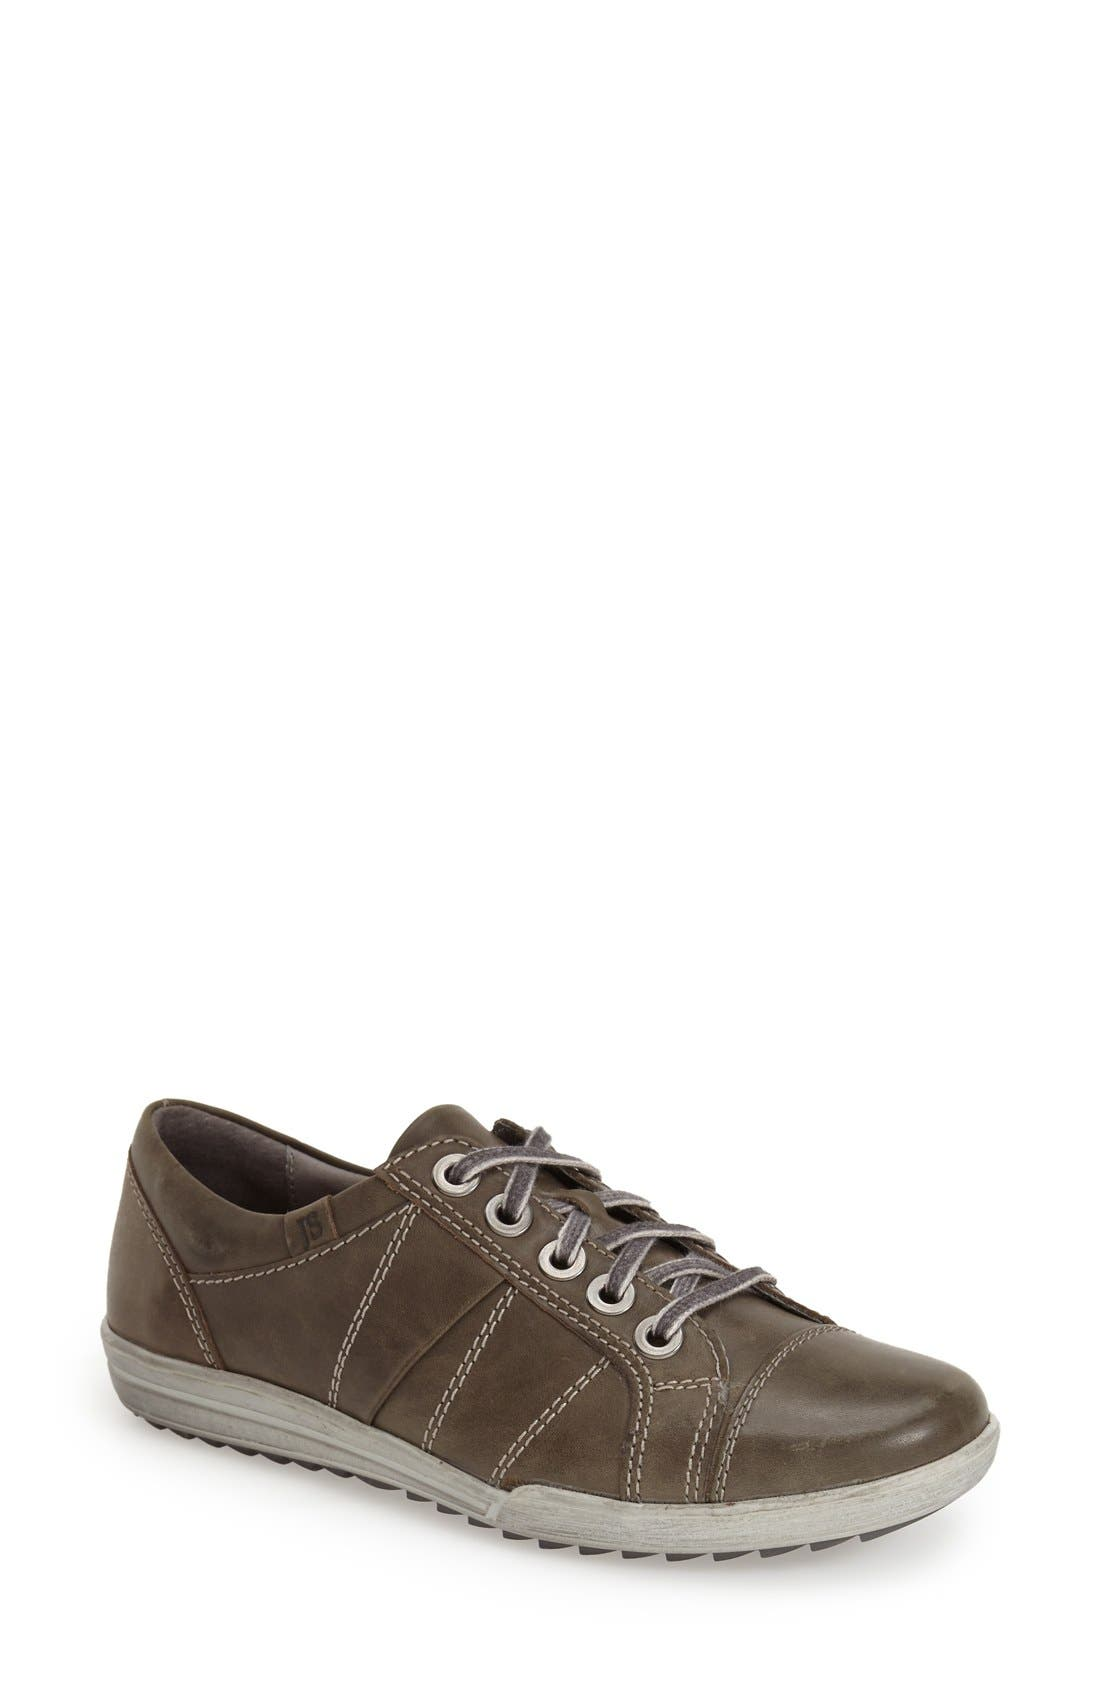 'Dany 05' Leather Sneaker,                             Main thumbnail 4, color,